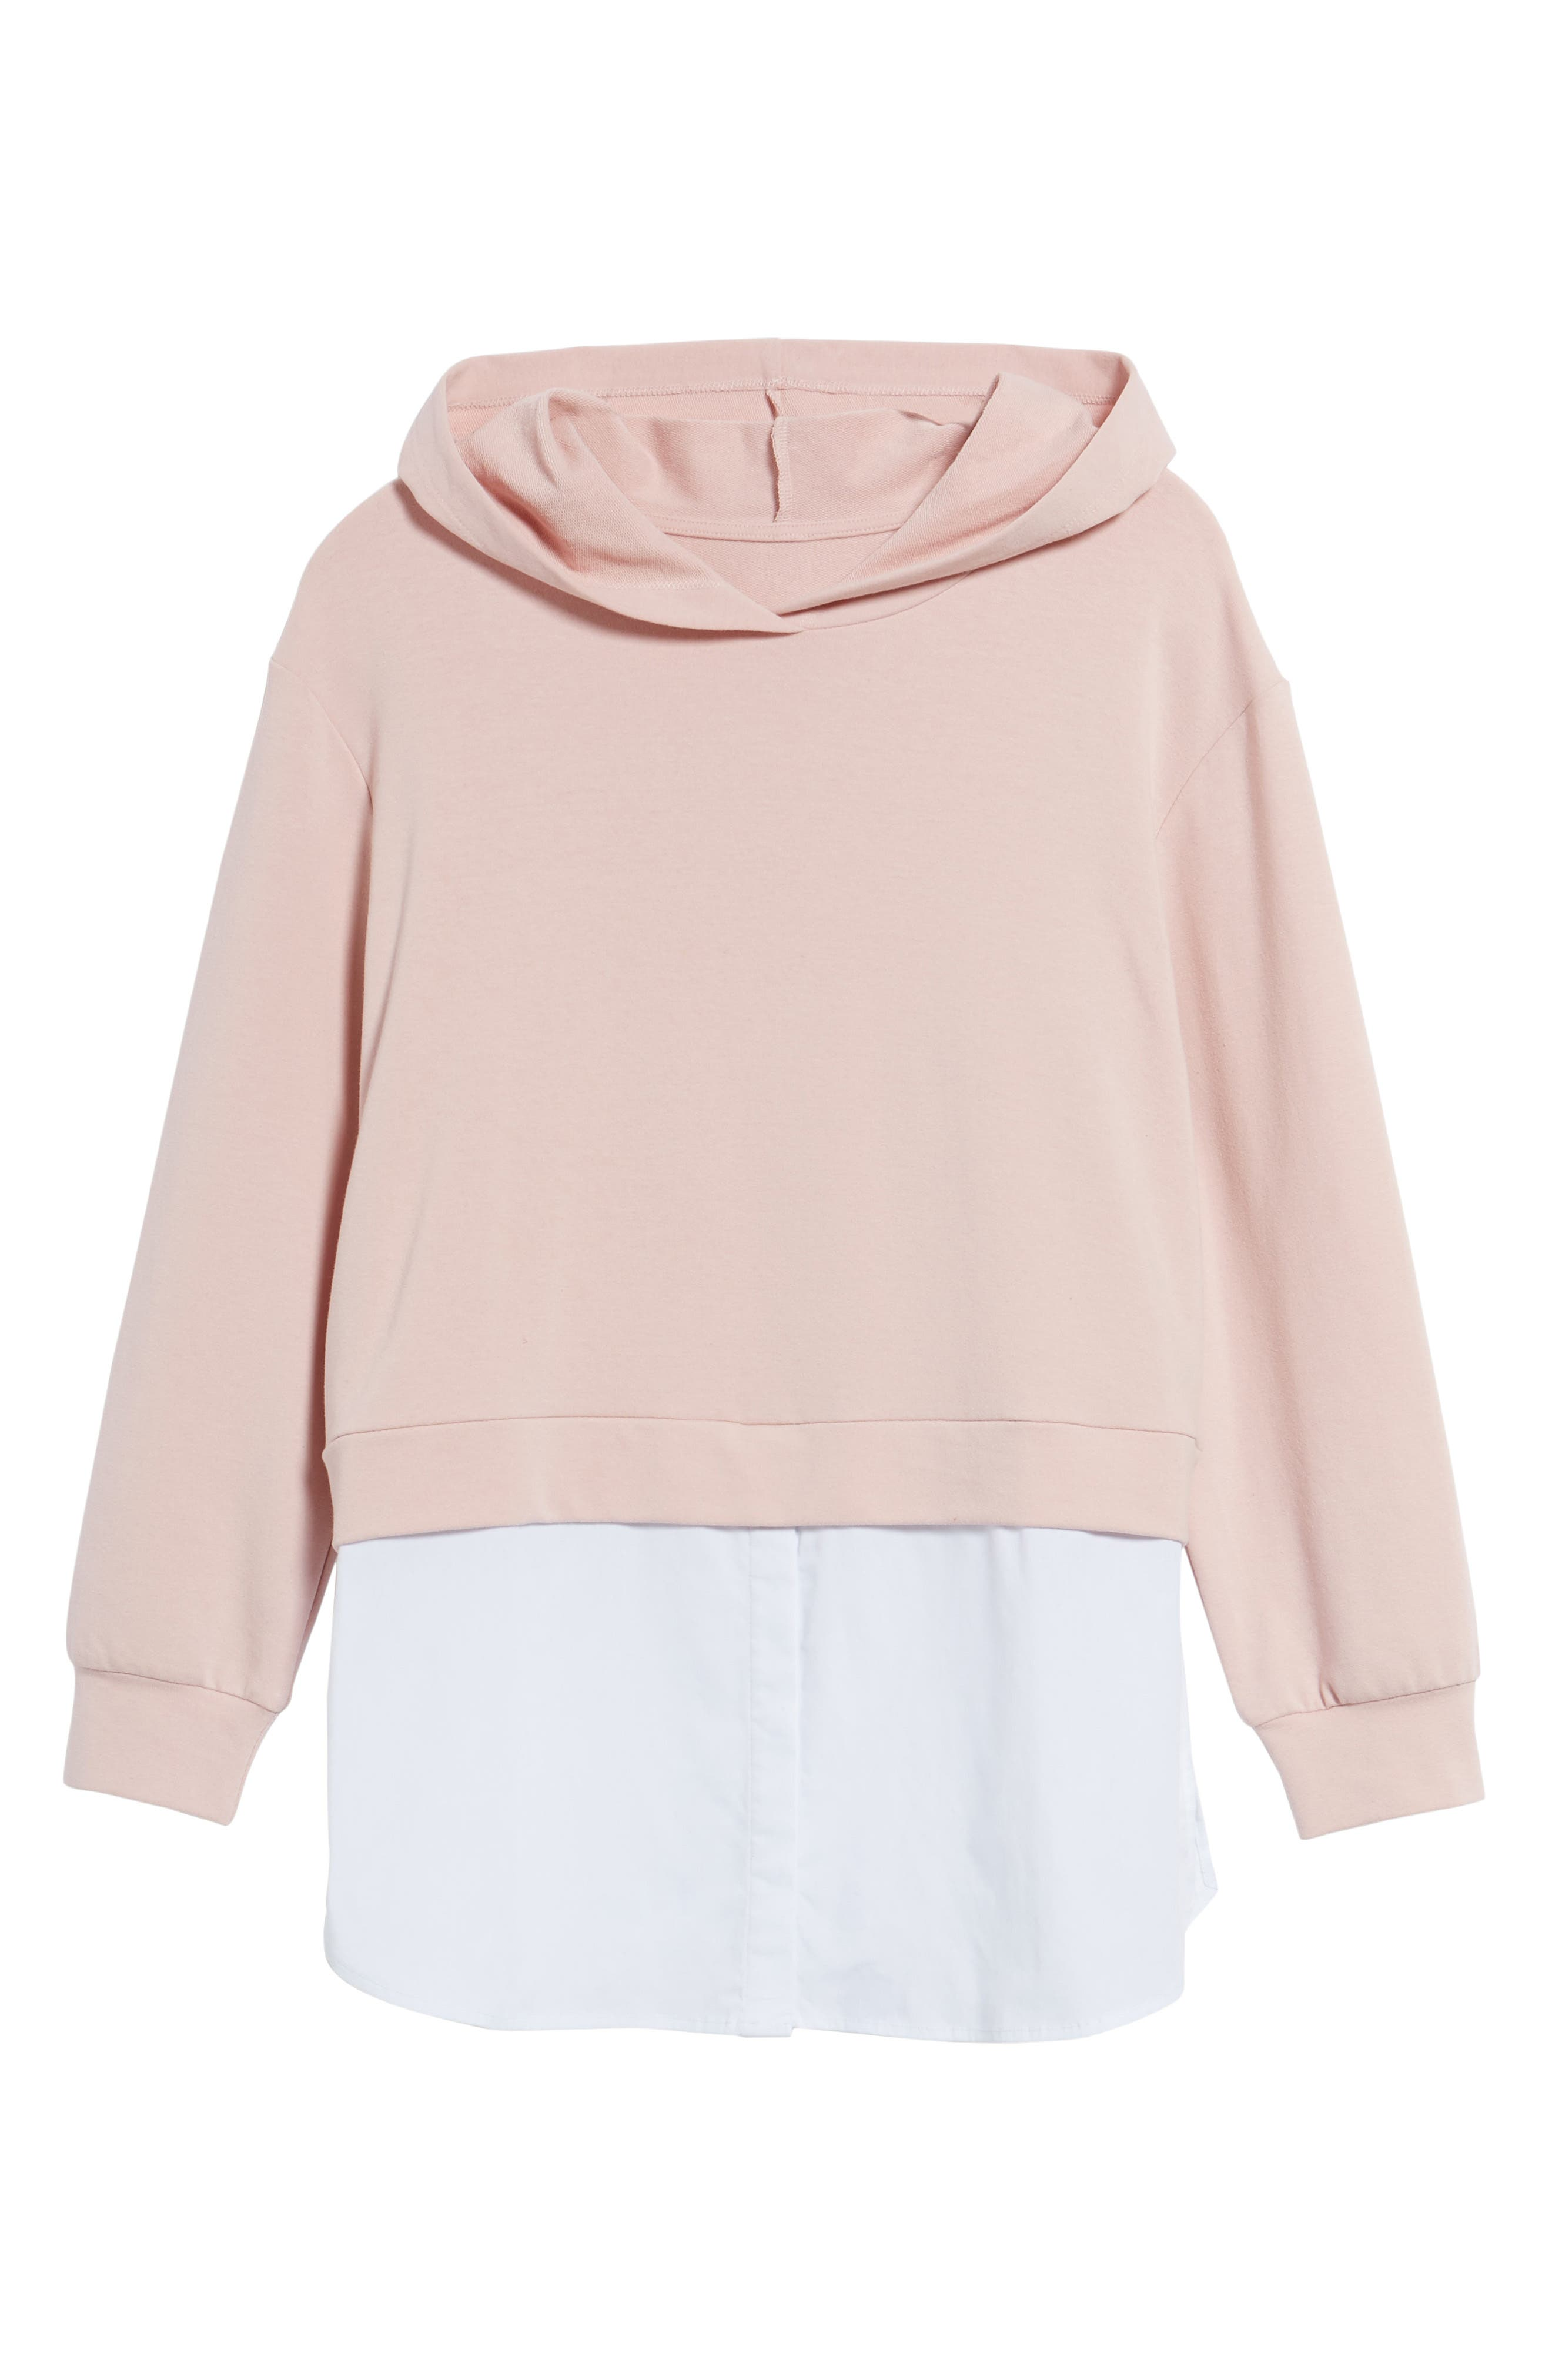 Layered Look Hoodie,                             Alternate thumbnail 6, color,                             Dusty Pink